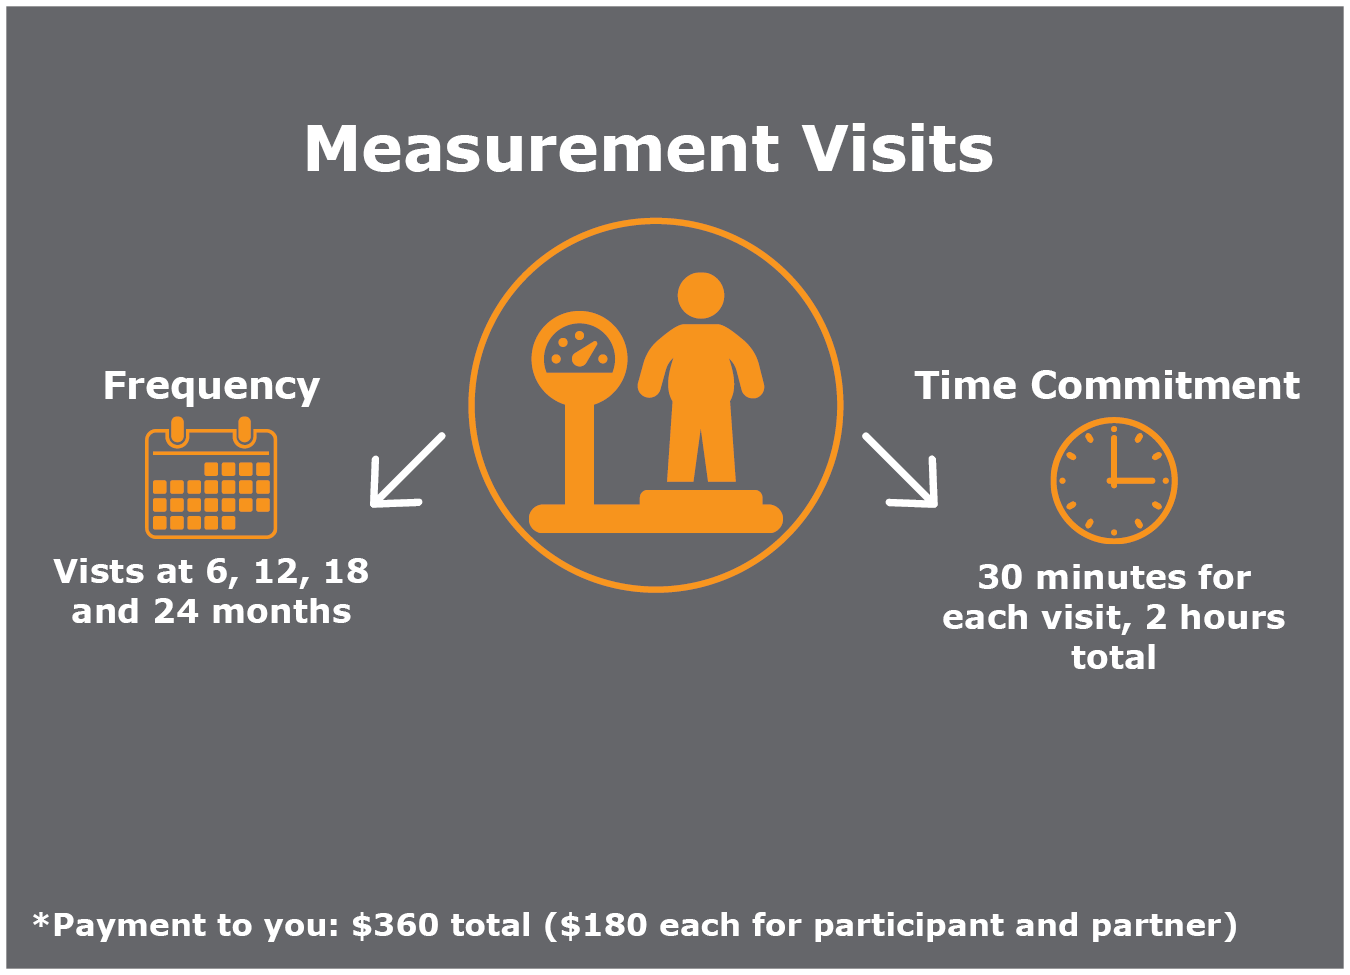 You will be expected to attend measurement visits at 6, 12, 18 and 24 months. Each visit should last 30 minutes, for a total time commitment of 2 hours. You and your partner will each receive $180, for a total of $360.